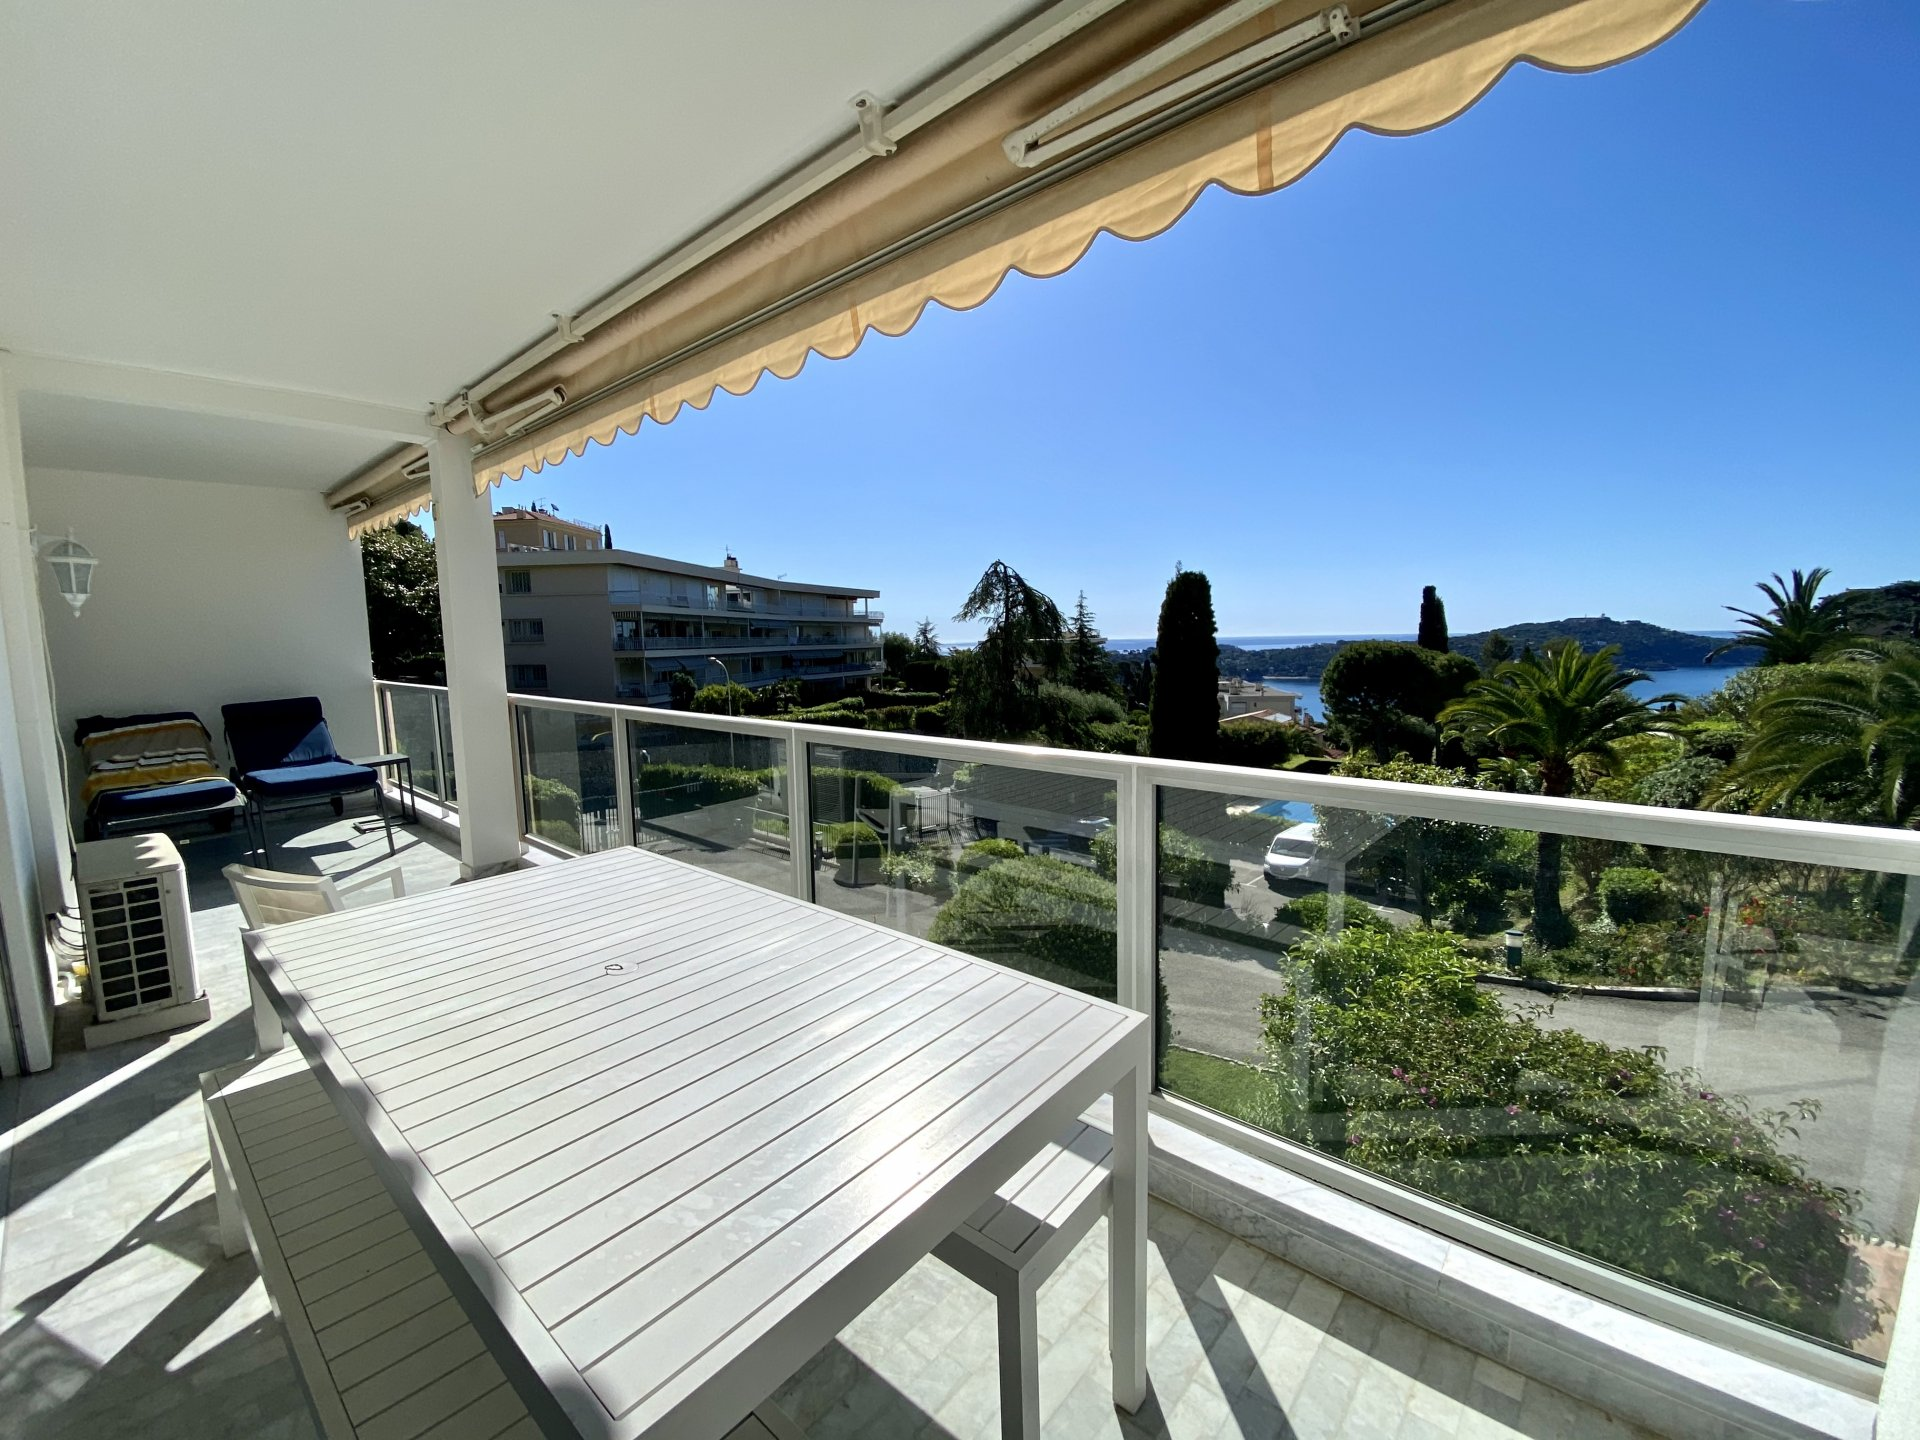 VILLEFRANCHE SUR MER - Magnificent 4 bedrooms with terrace and panoramic sea view